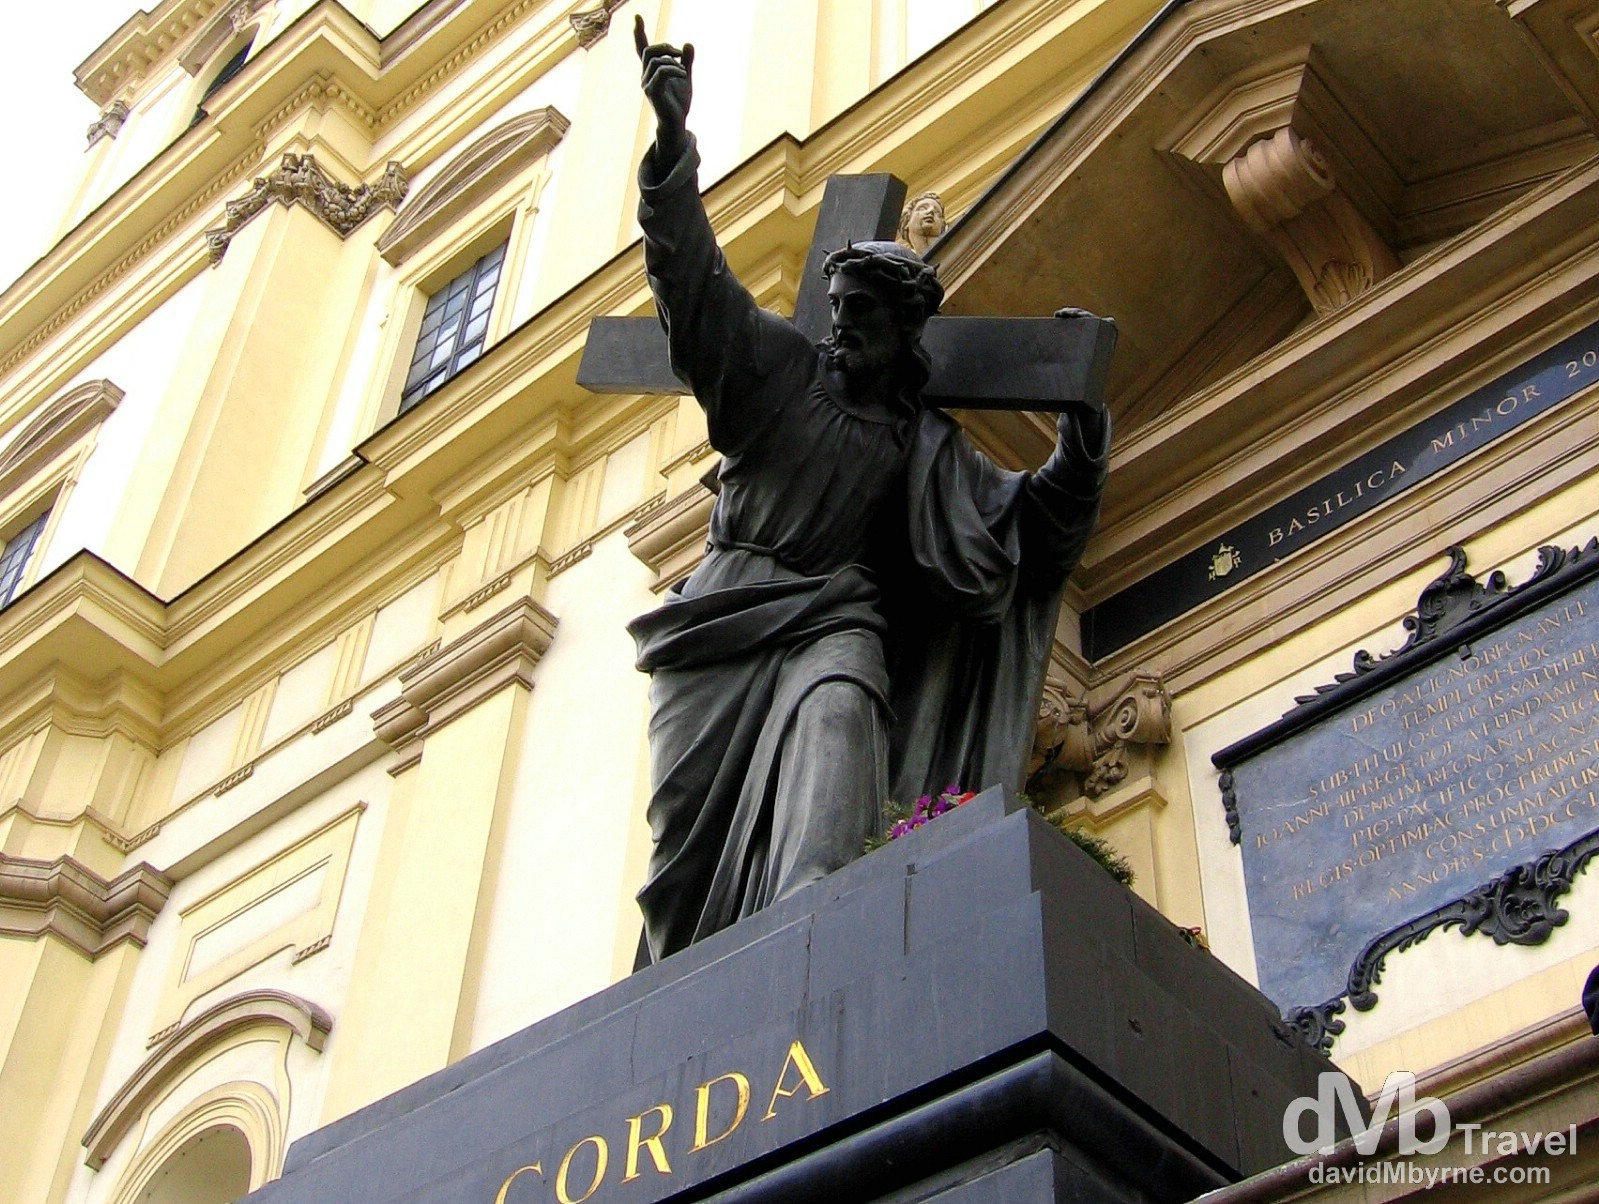 The statue of Christ Bearing His Cross outside the Church of the Holy Cross, in Warsaw, Poland. March 5, 2006.